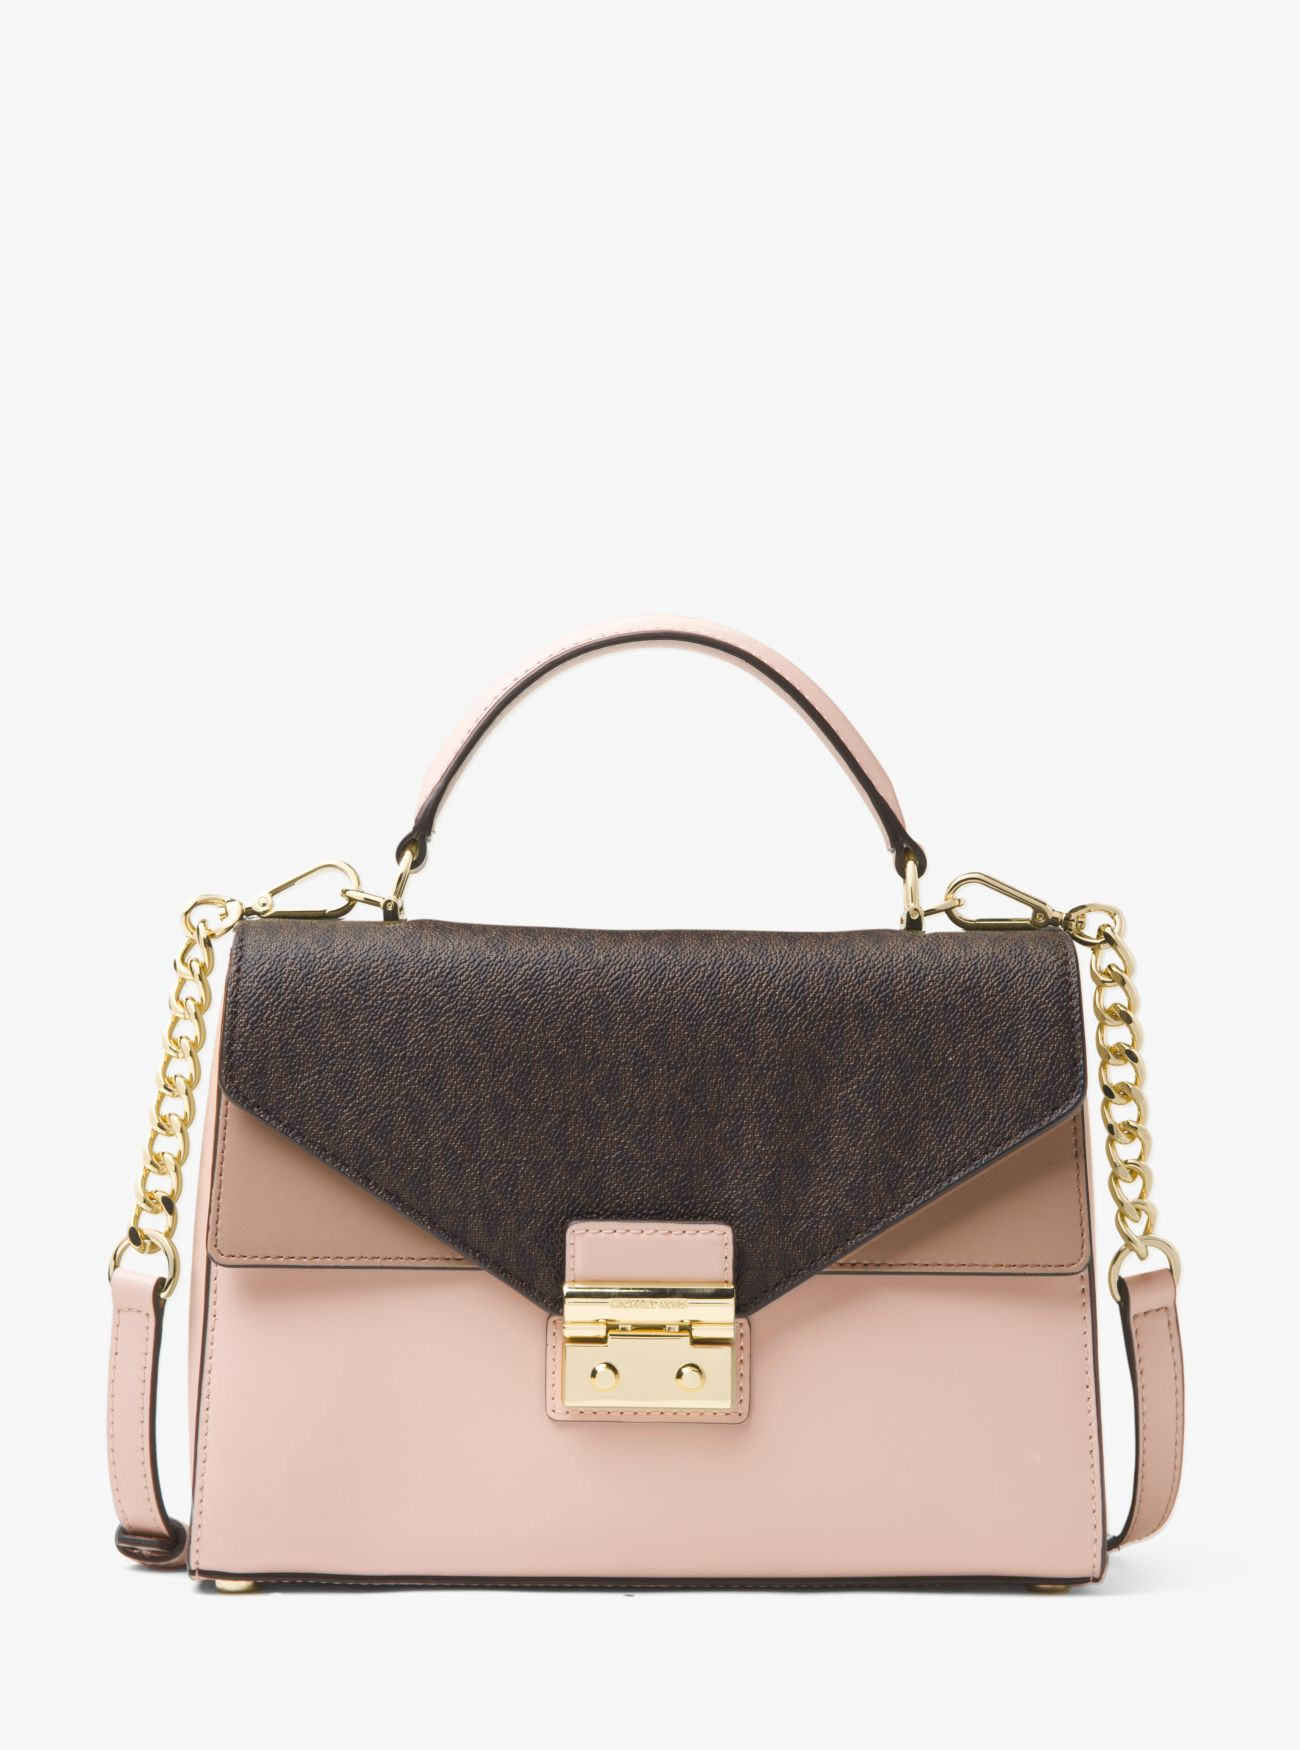 162d77c5c35f Michael Kors Sloan Color-Block Leather And Logo Satchel - Brn/Sfpk/Fwn